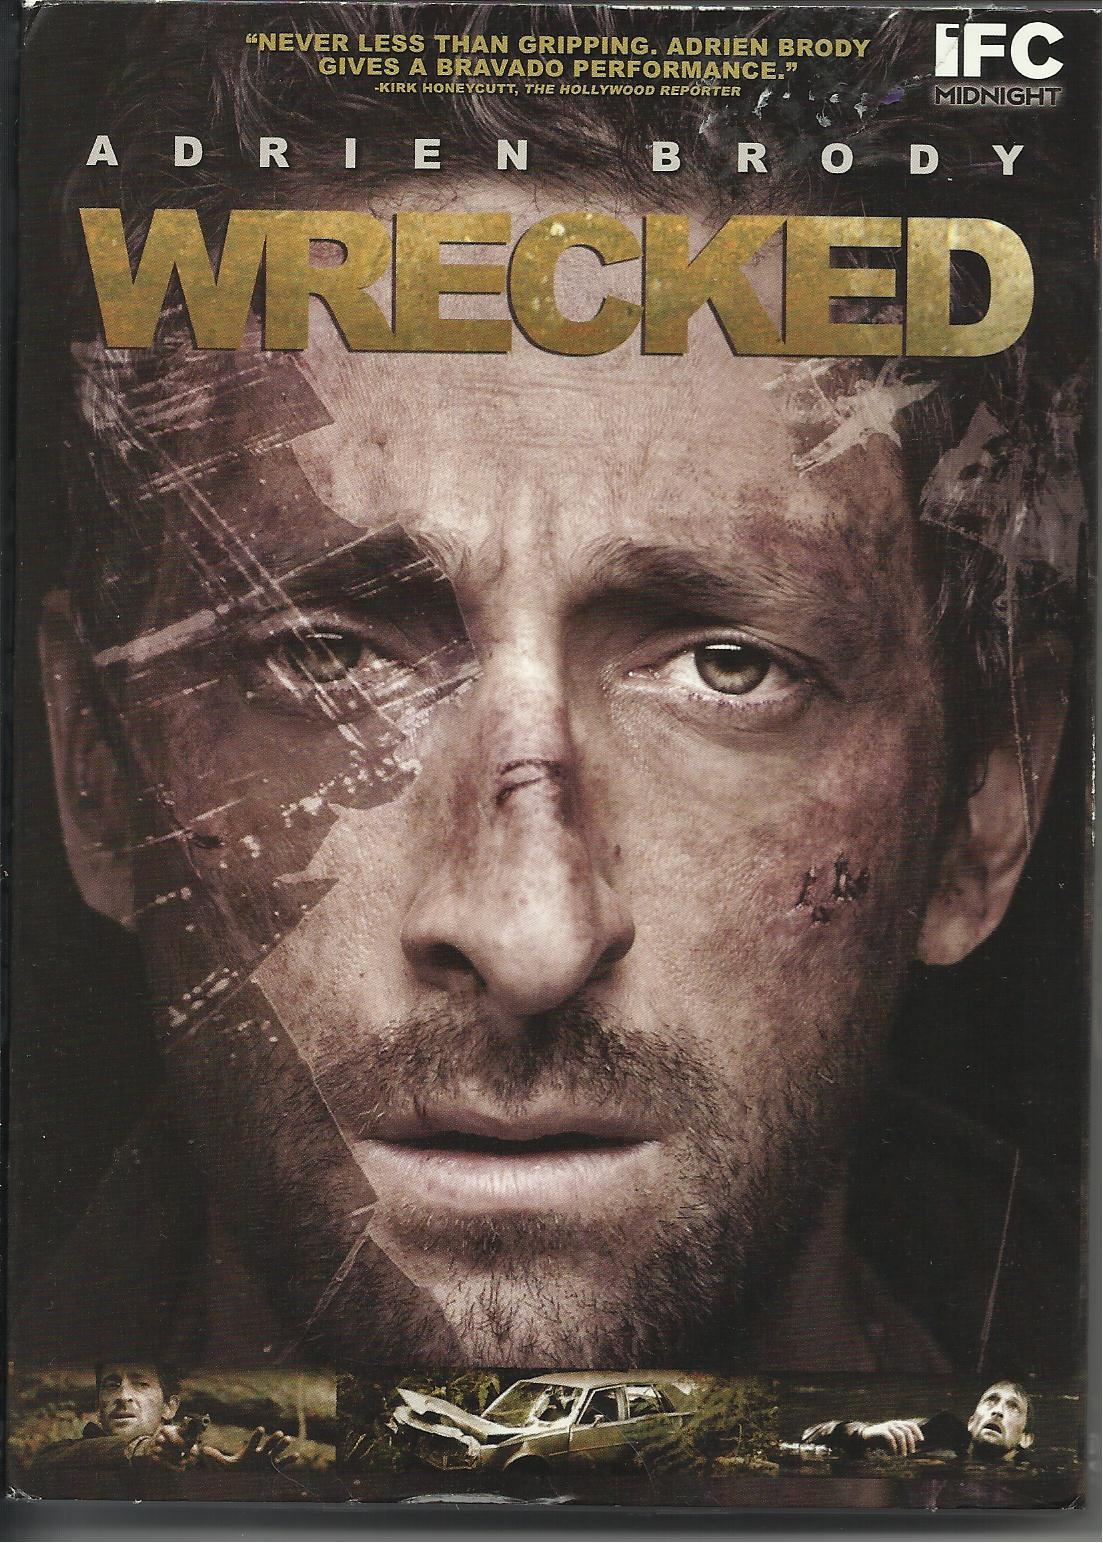 Tales of the Easily Di... Adrien Brody Wrecked